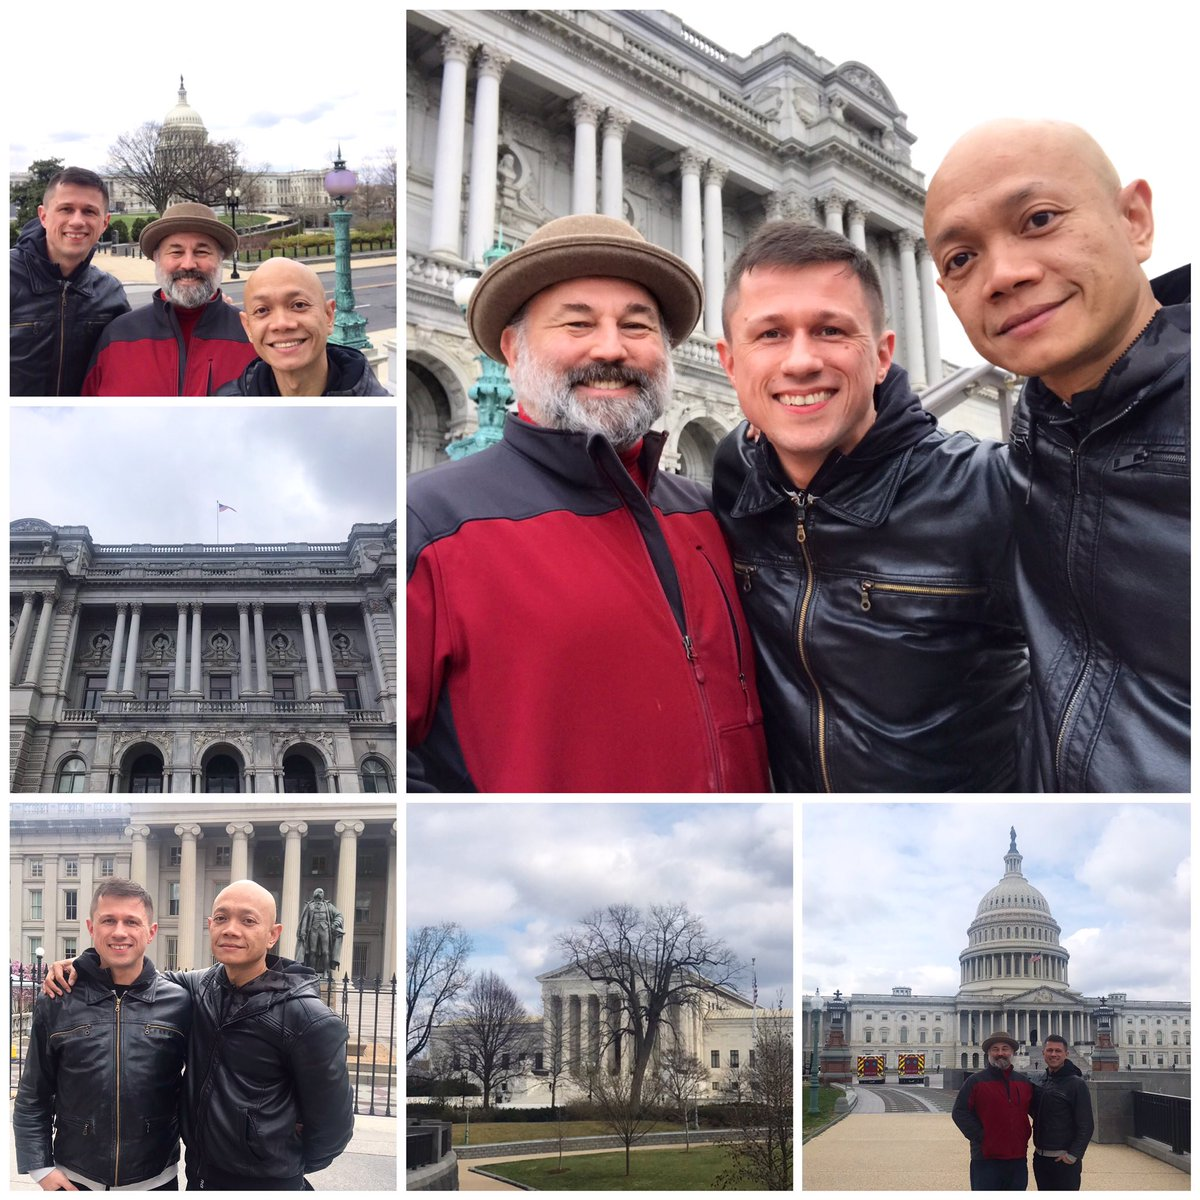 Remembering our last day in #WashingtonDC, taking into the iconic #CapitolBuilding, #LibraryOfCongress and #SupremeCourt, also the office of Ruth Bader Ginsburg. This was a special day. #awesome #sightseeing #travel #traveller #travelling #usa